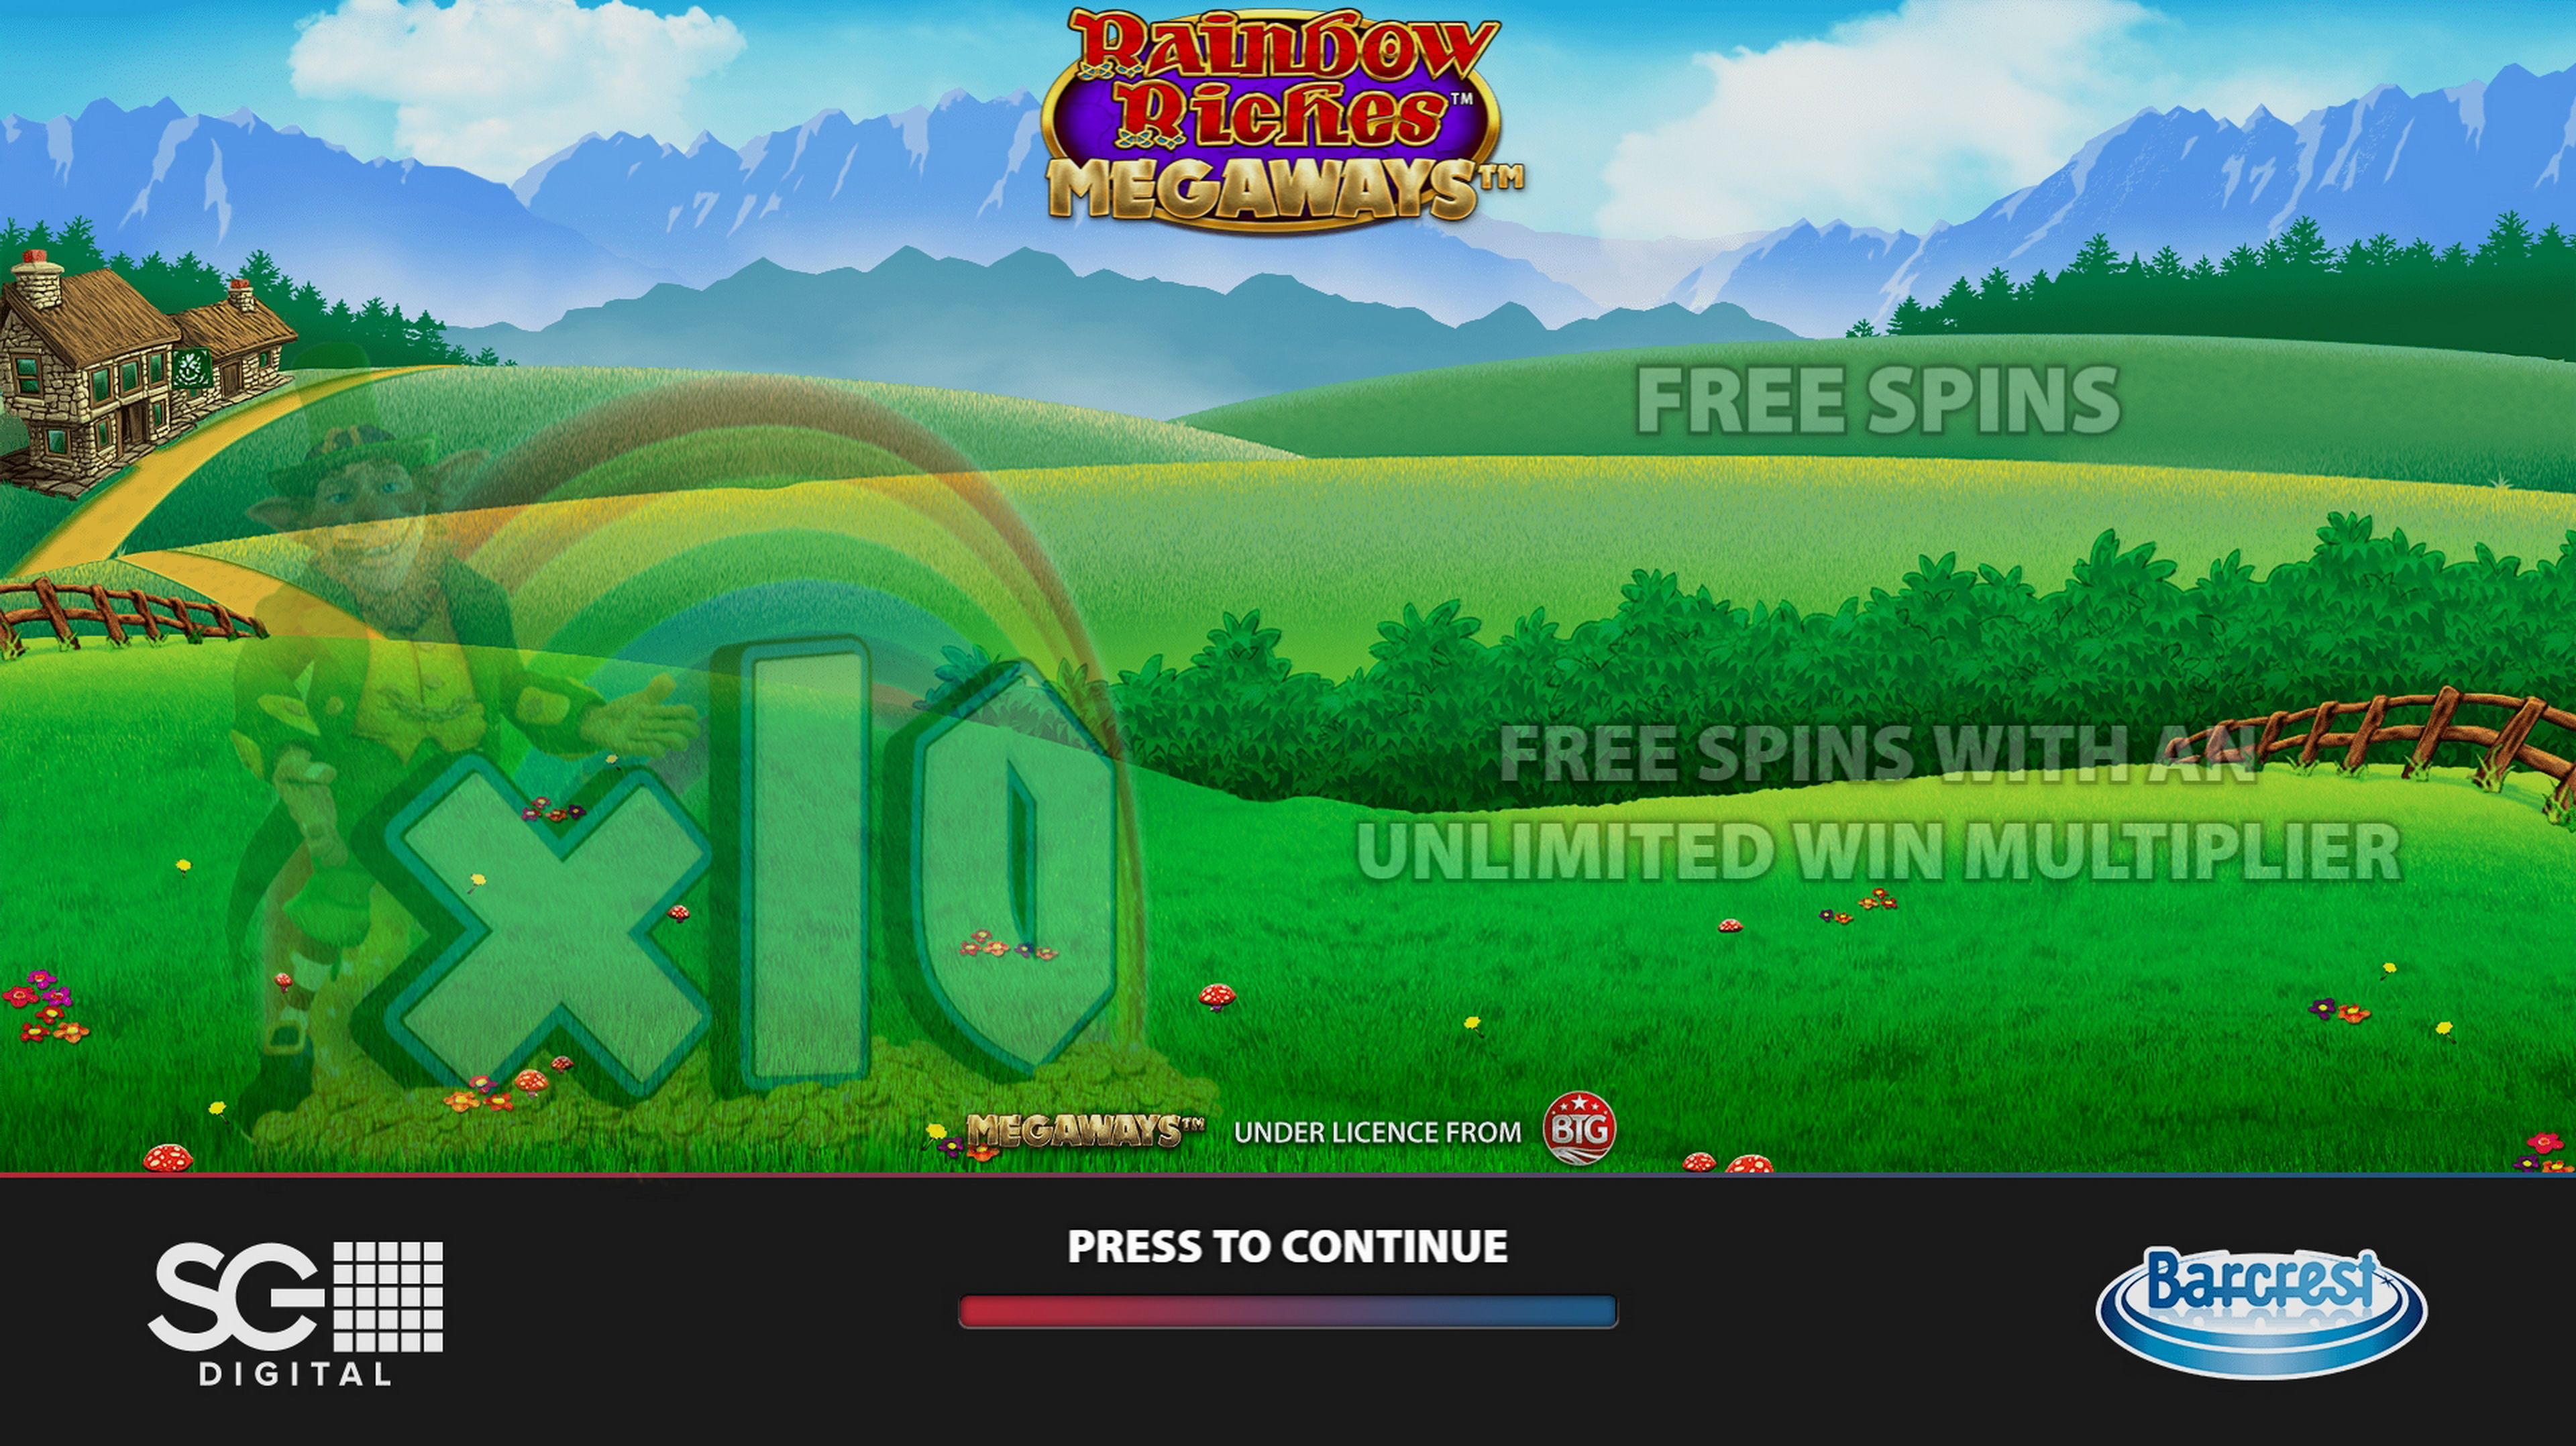 Play Rainbow Riches Megaways Free Casino Slot Game by Barcrest Games